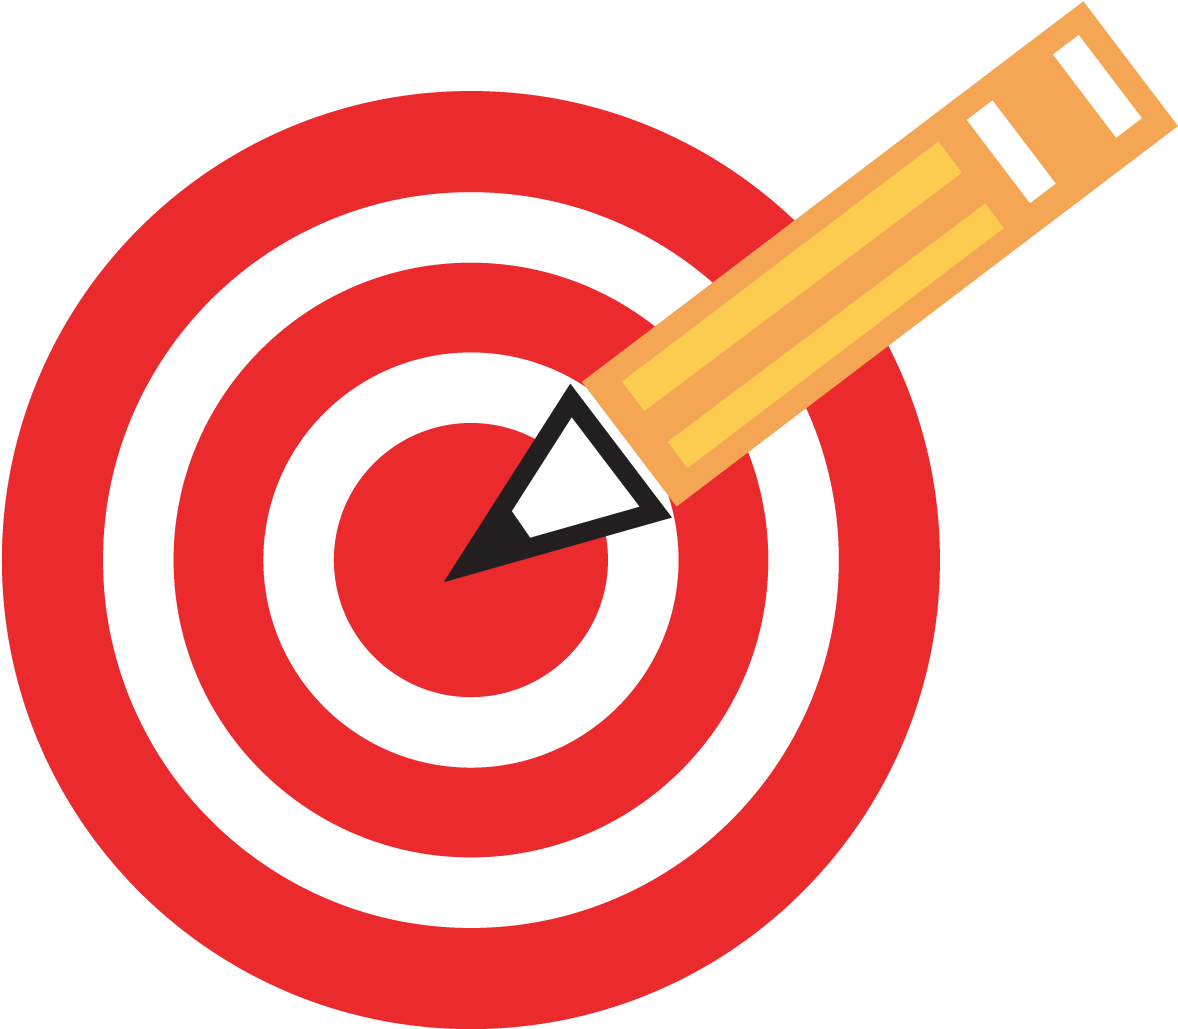 Lesson cliparts png download. Bullseye clipart target learning